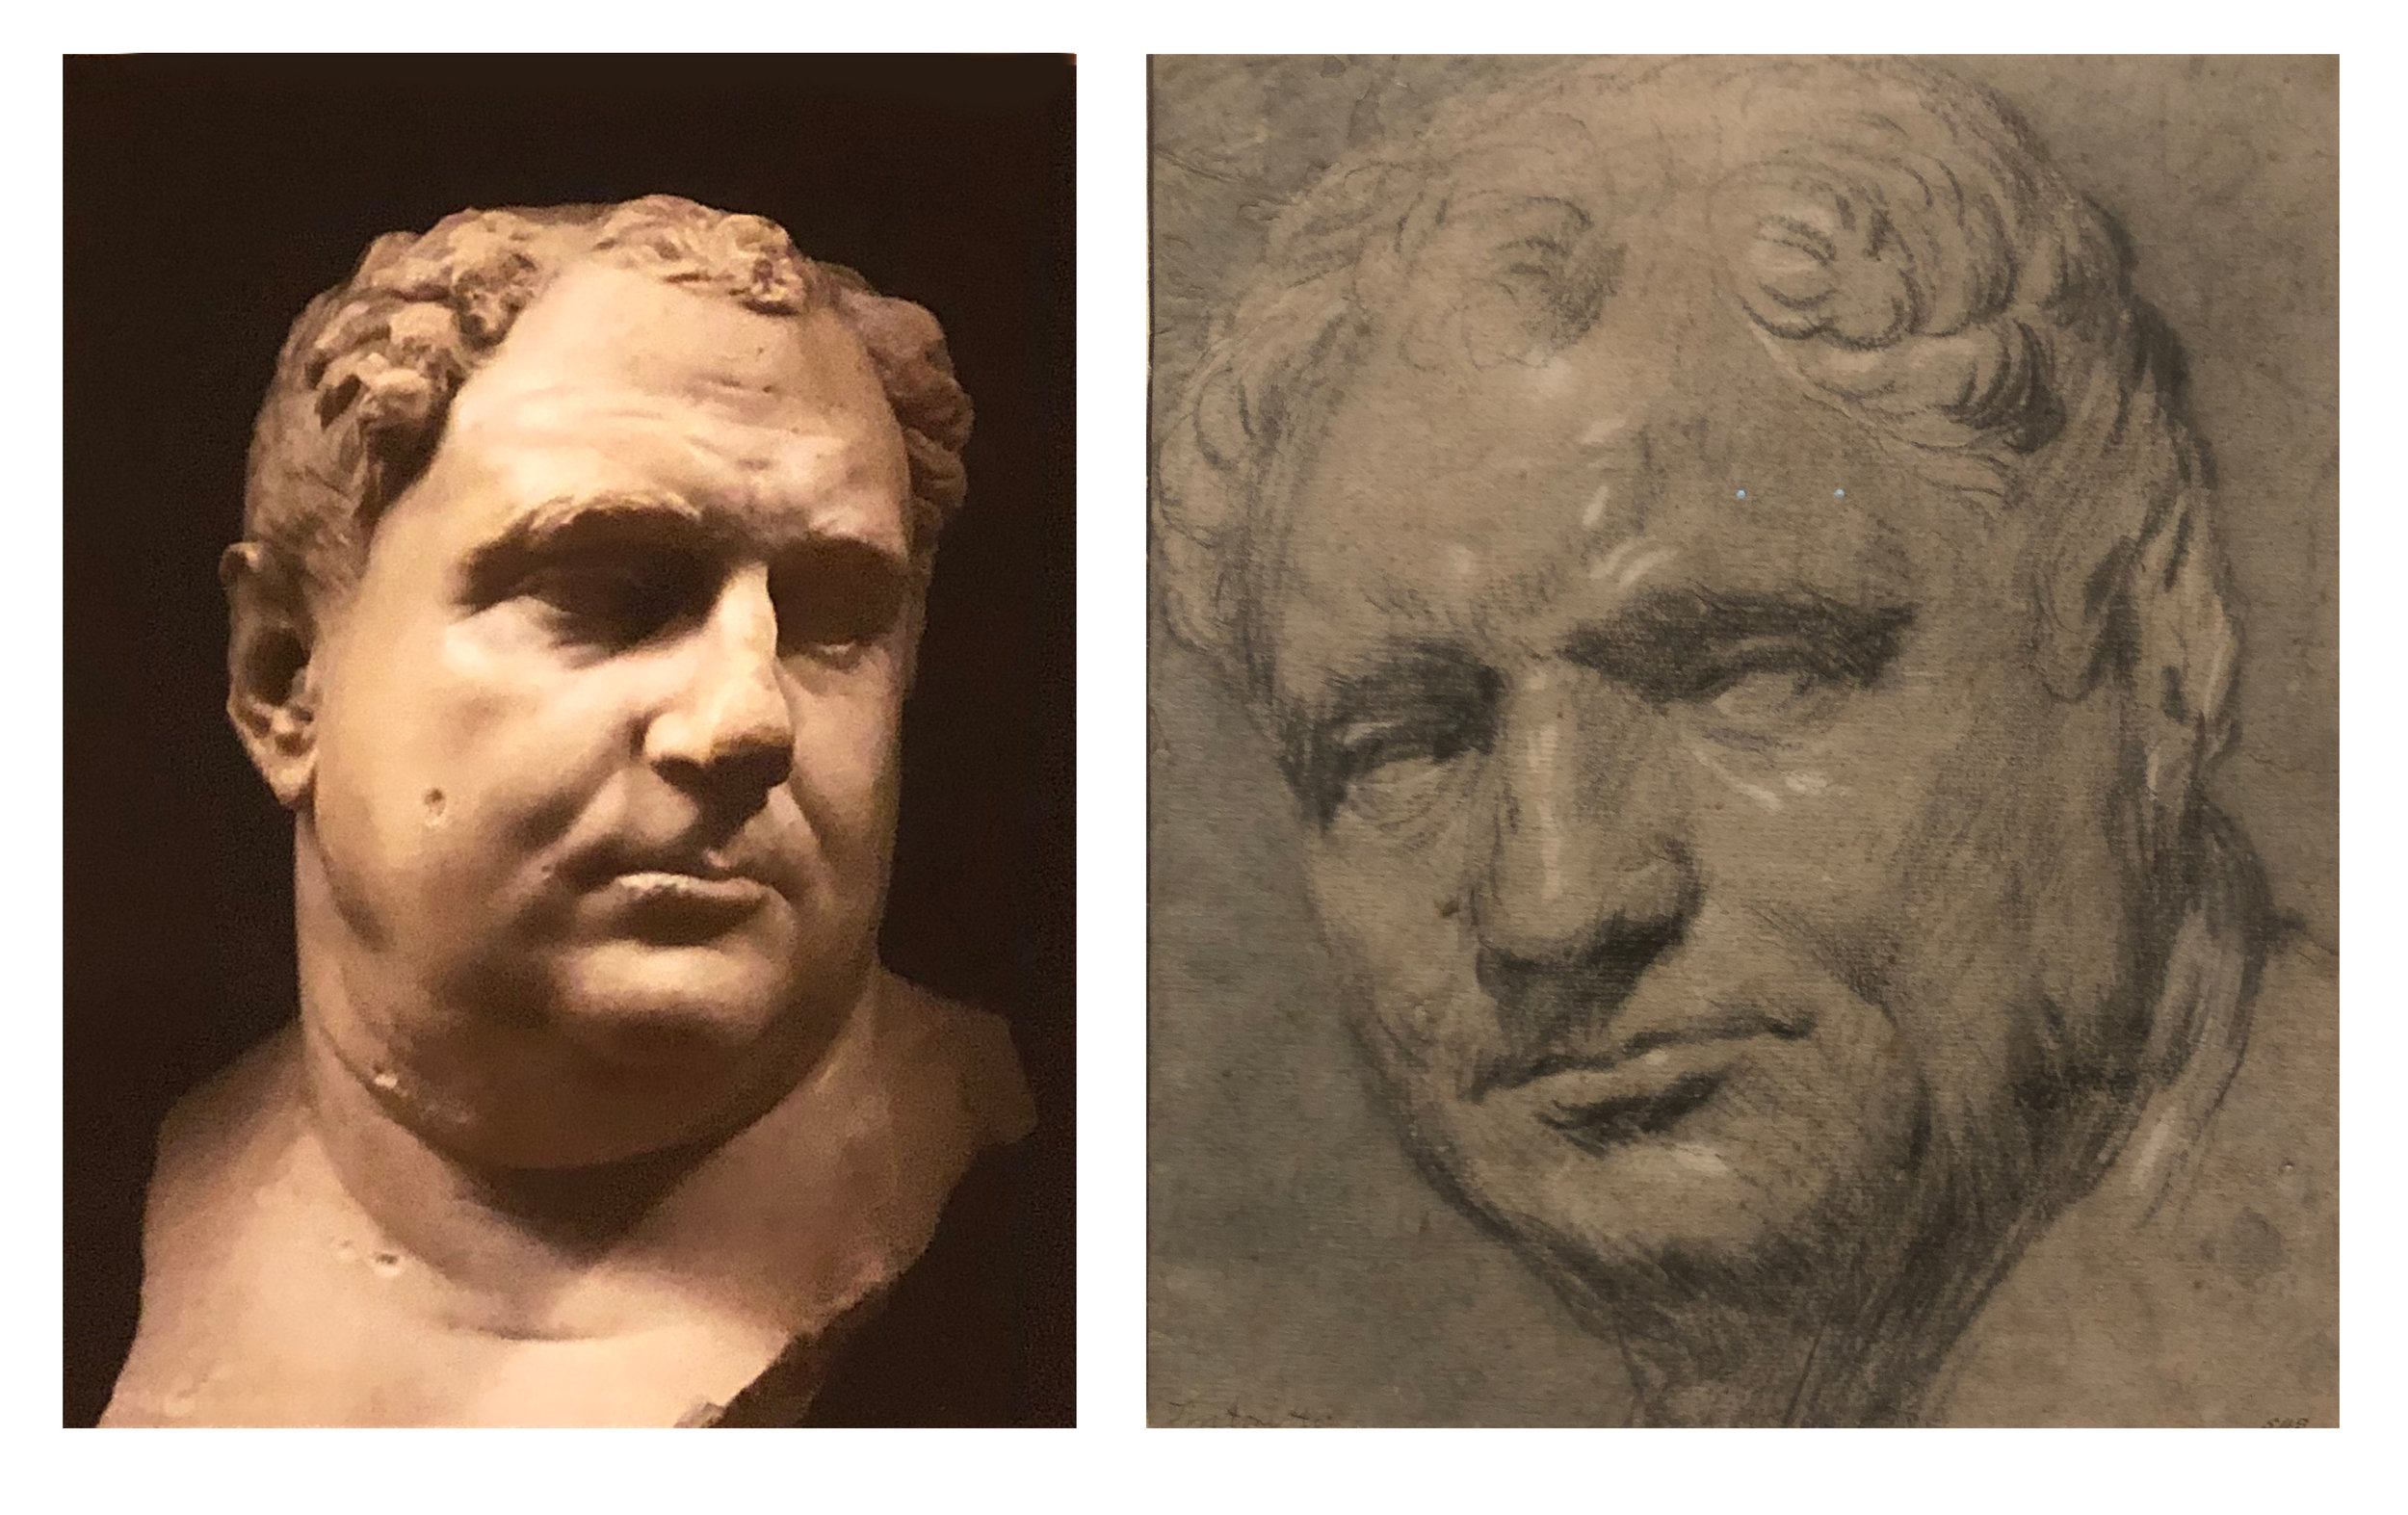 Left: Portrait of a Man, Vitellius c. AD 100-150, Museo Archeological Nazionale, Venice  Right: Study after a Bust of Vitellius, Tintoretto, Staatliche Graphische Sammlung, Munich. Now on show at the National Gallery